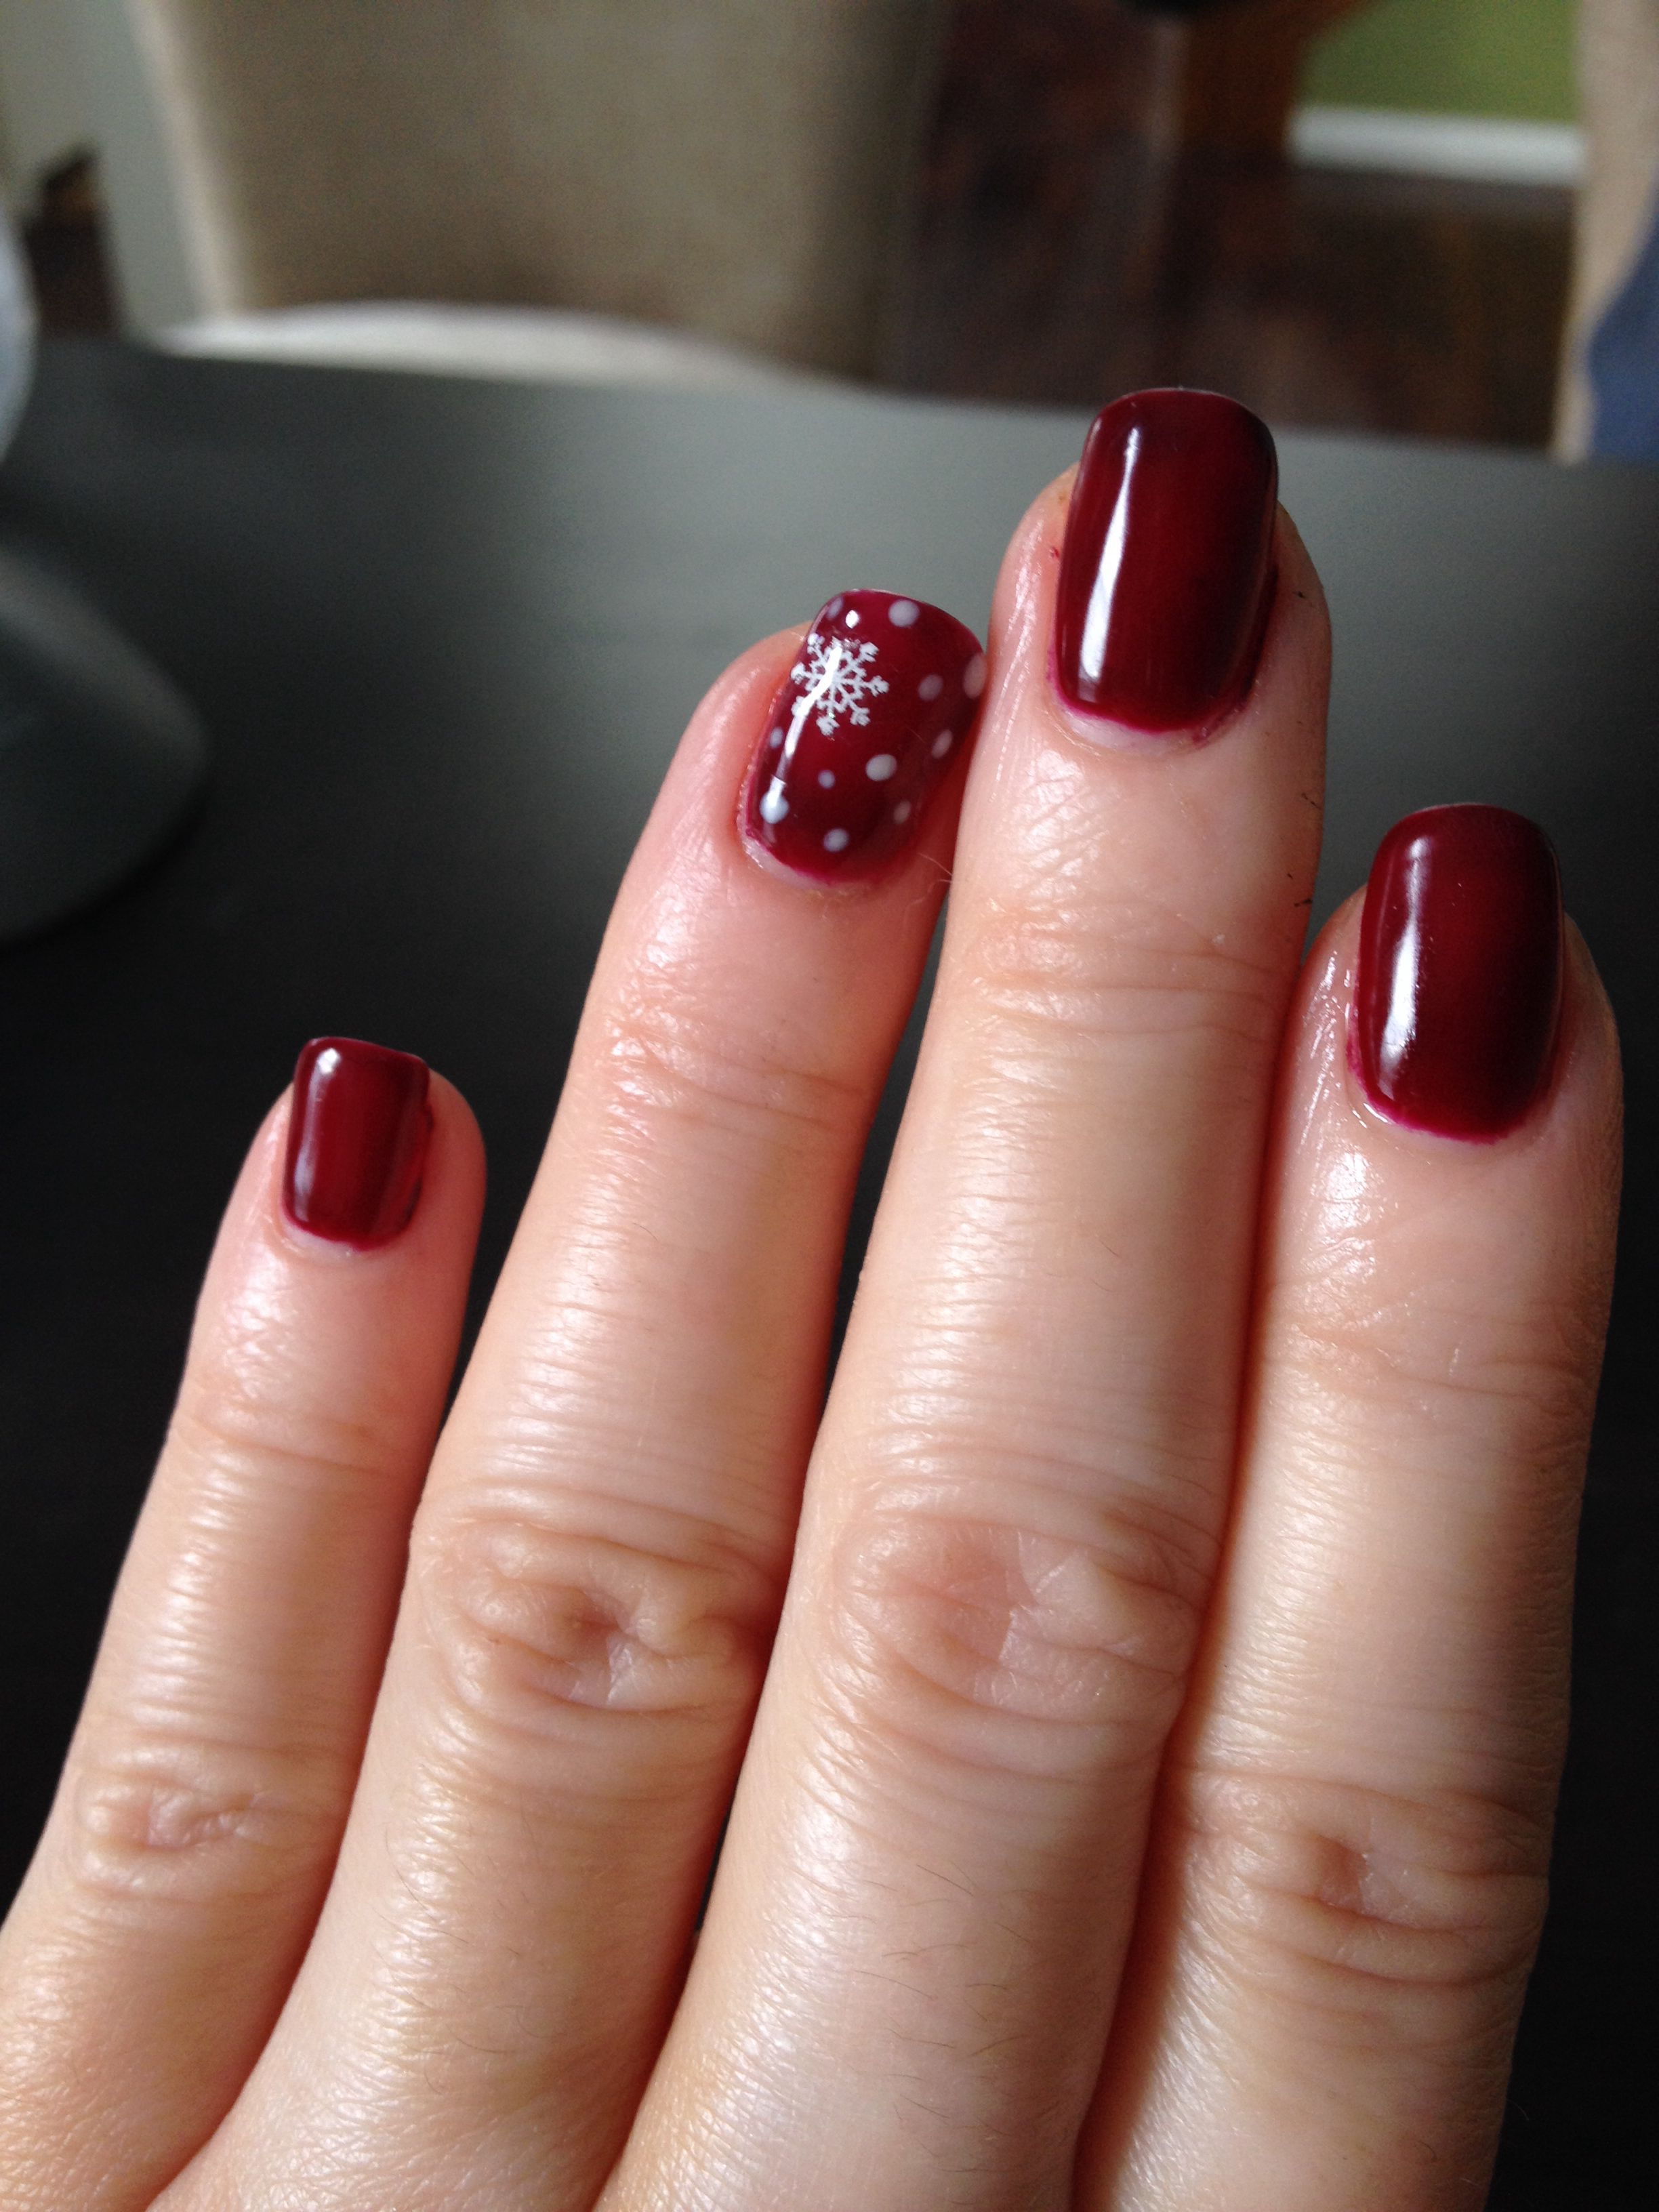 Christmas Nails Shellac Nail Art Been Doing Nails For 14years This Is My Favorite So Far Shellac Nail Art Christmas Nails Shellac Nail Designs